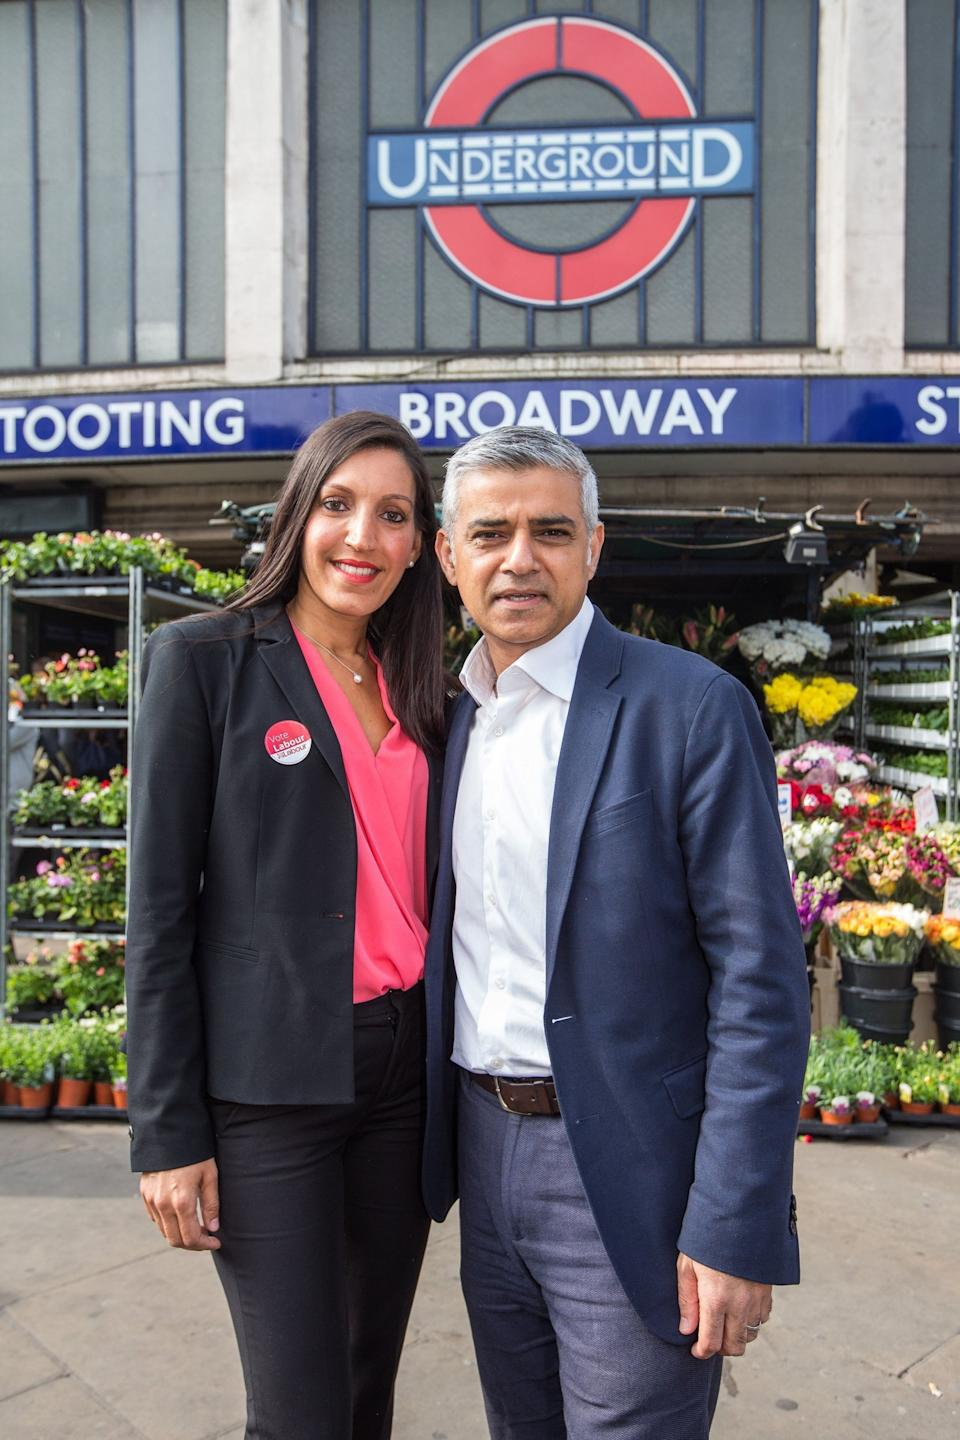 Mayor of London Sadiq Khan with Dr Rosena Allin-Khan Labour's candidate for the Tooting by-election outside Tooting Broadway tube station Alex Lentati/Evening Standard